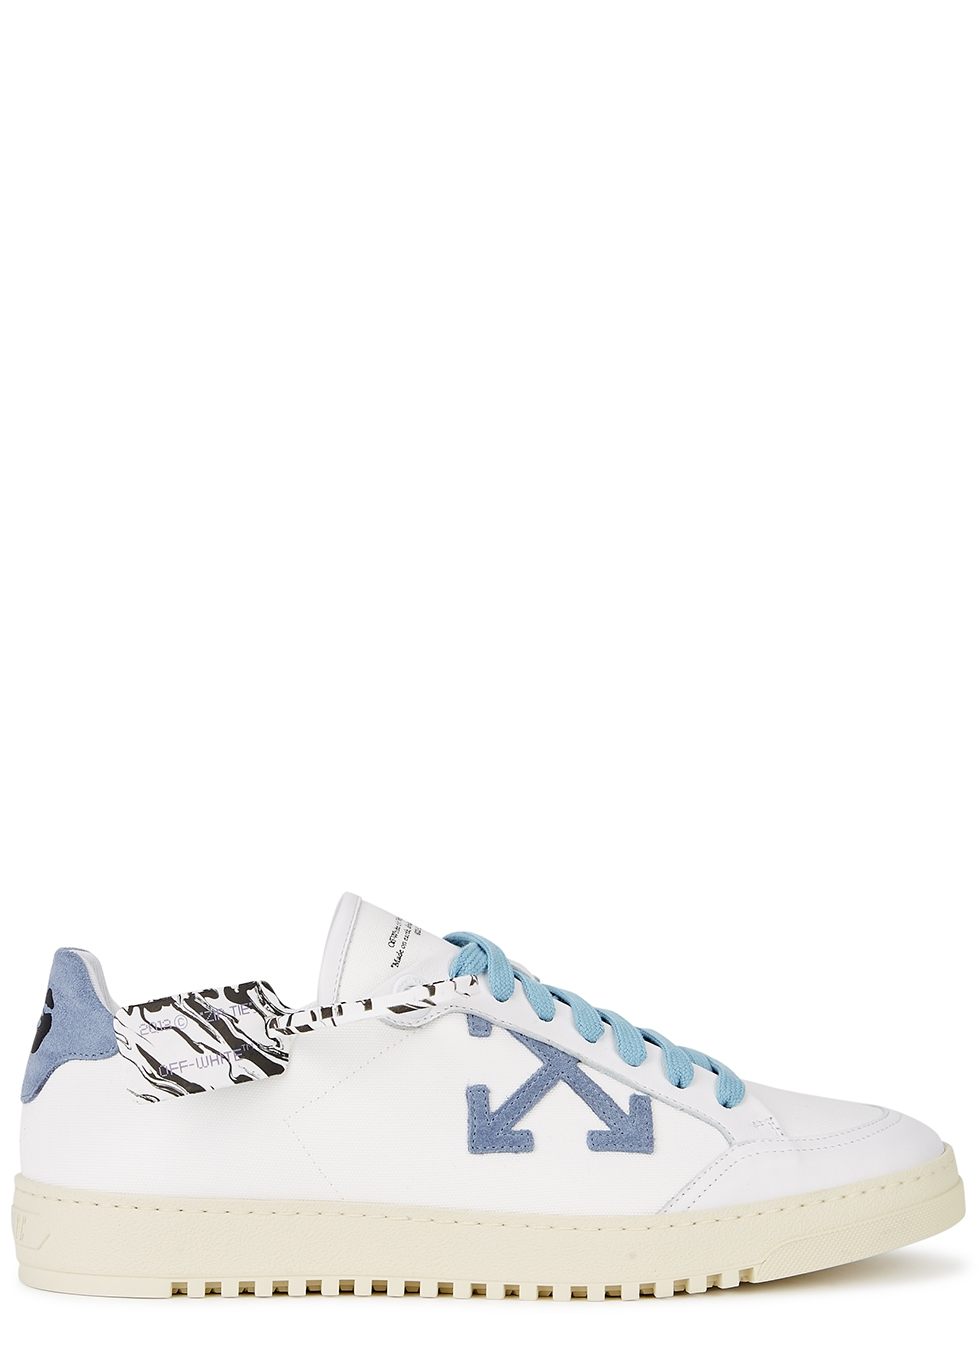 Off-White 2.0 white canvas sneakers